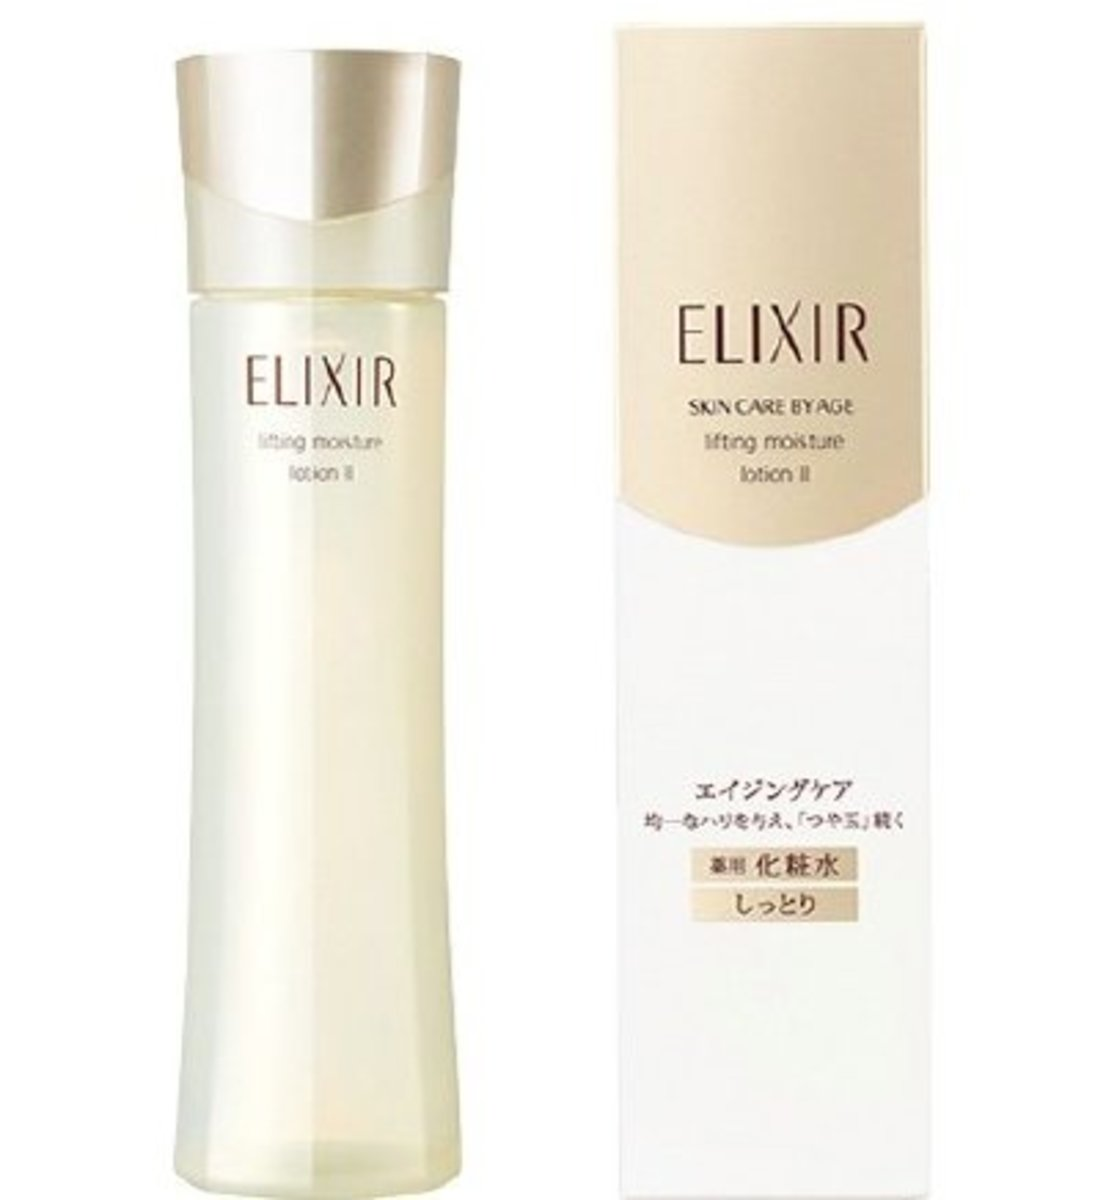 Elixir  Skin Care By Age Lifting Moisture Lotion II 170ml